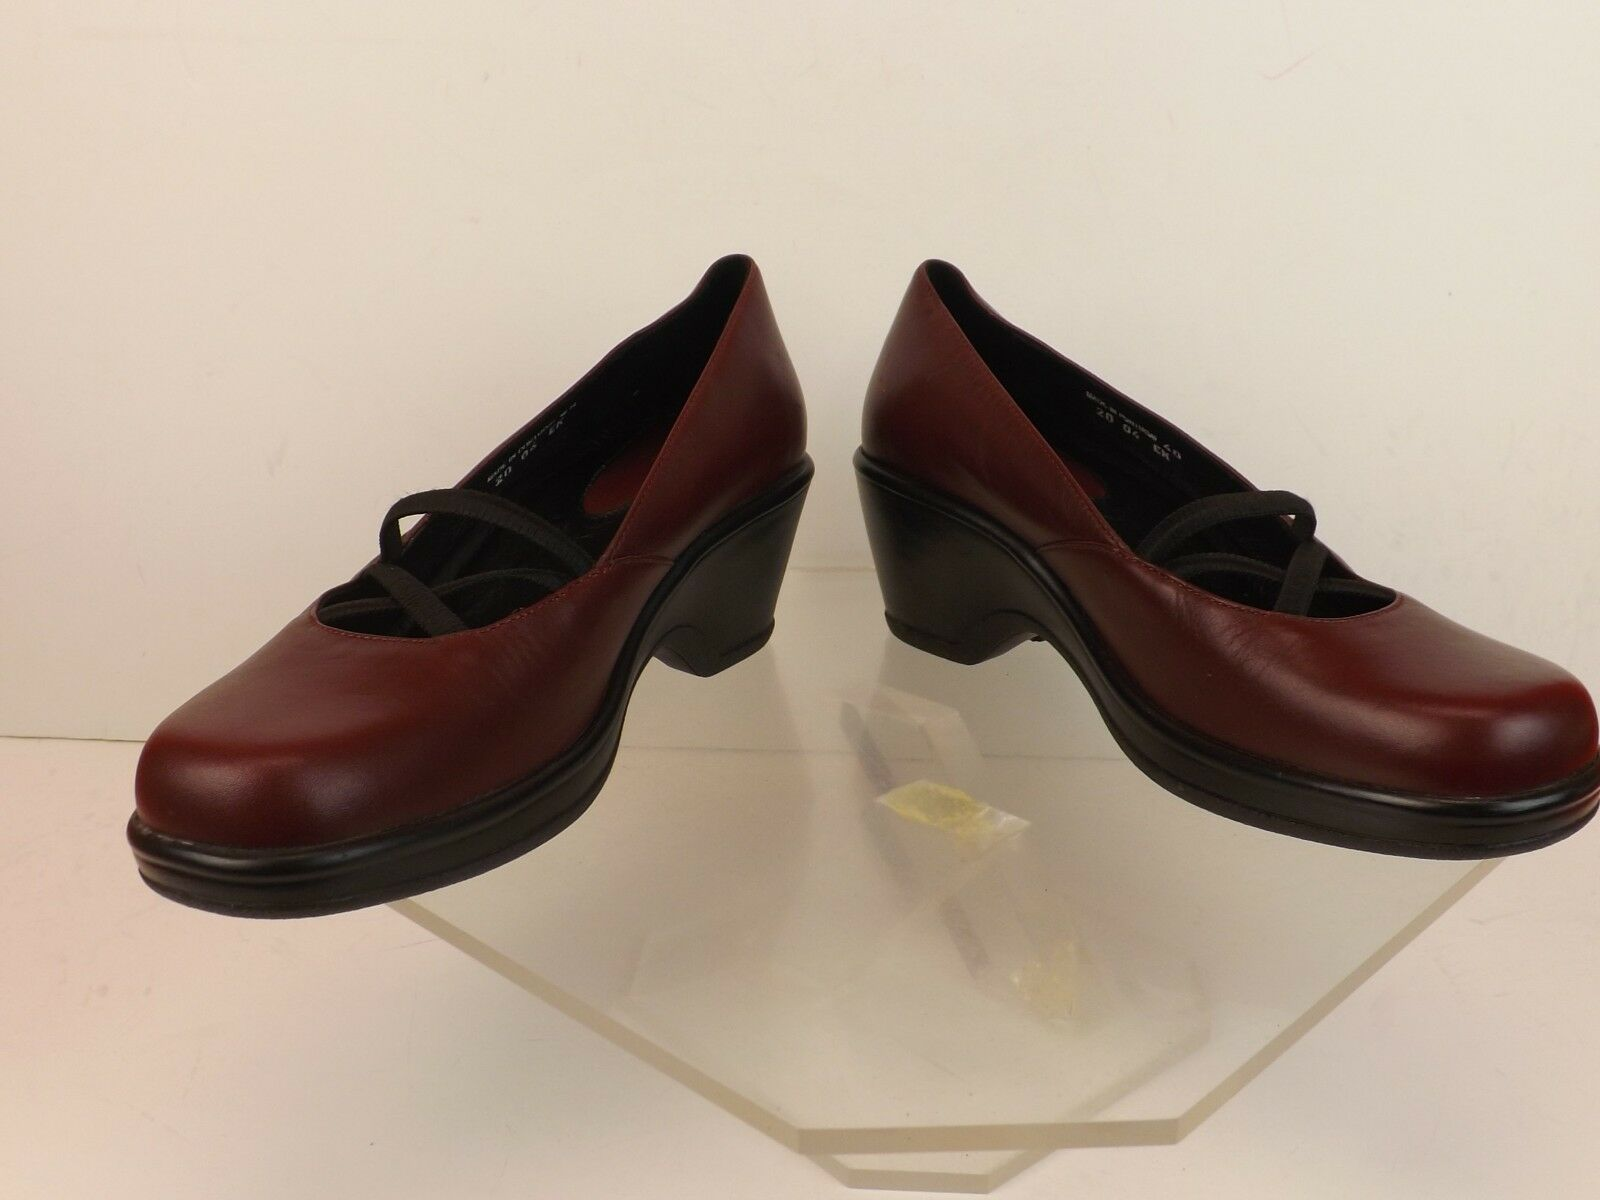 NWB DANSKO BURGUNDY LEATHER ELASTIC CRIS-CROSS MARY JANE STRAP CLOGS 38 PORTUGAL